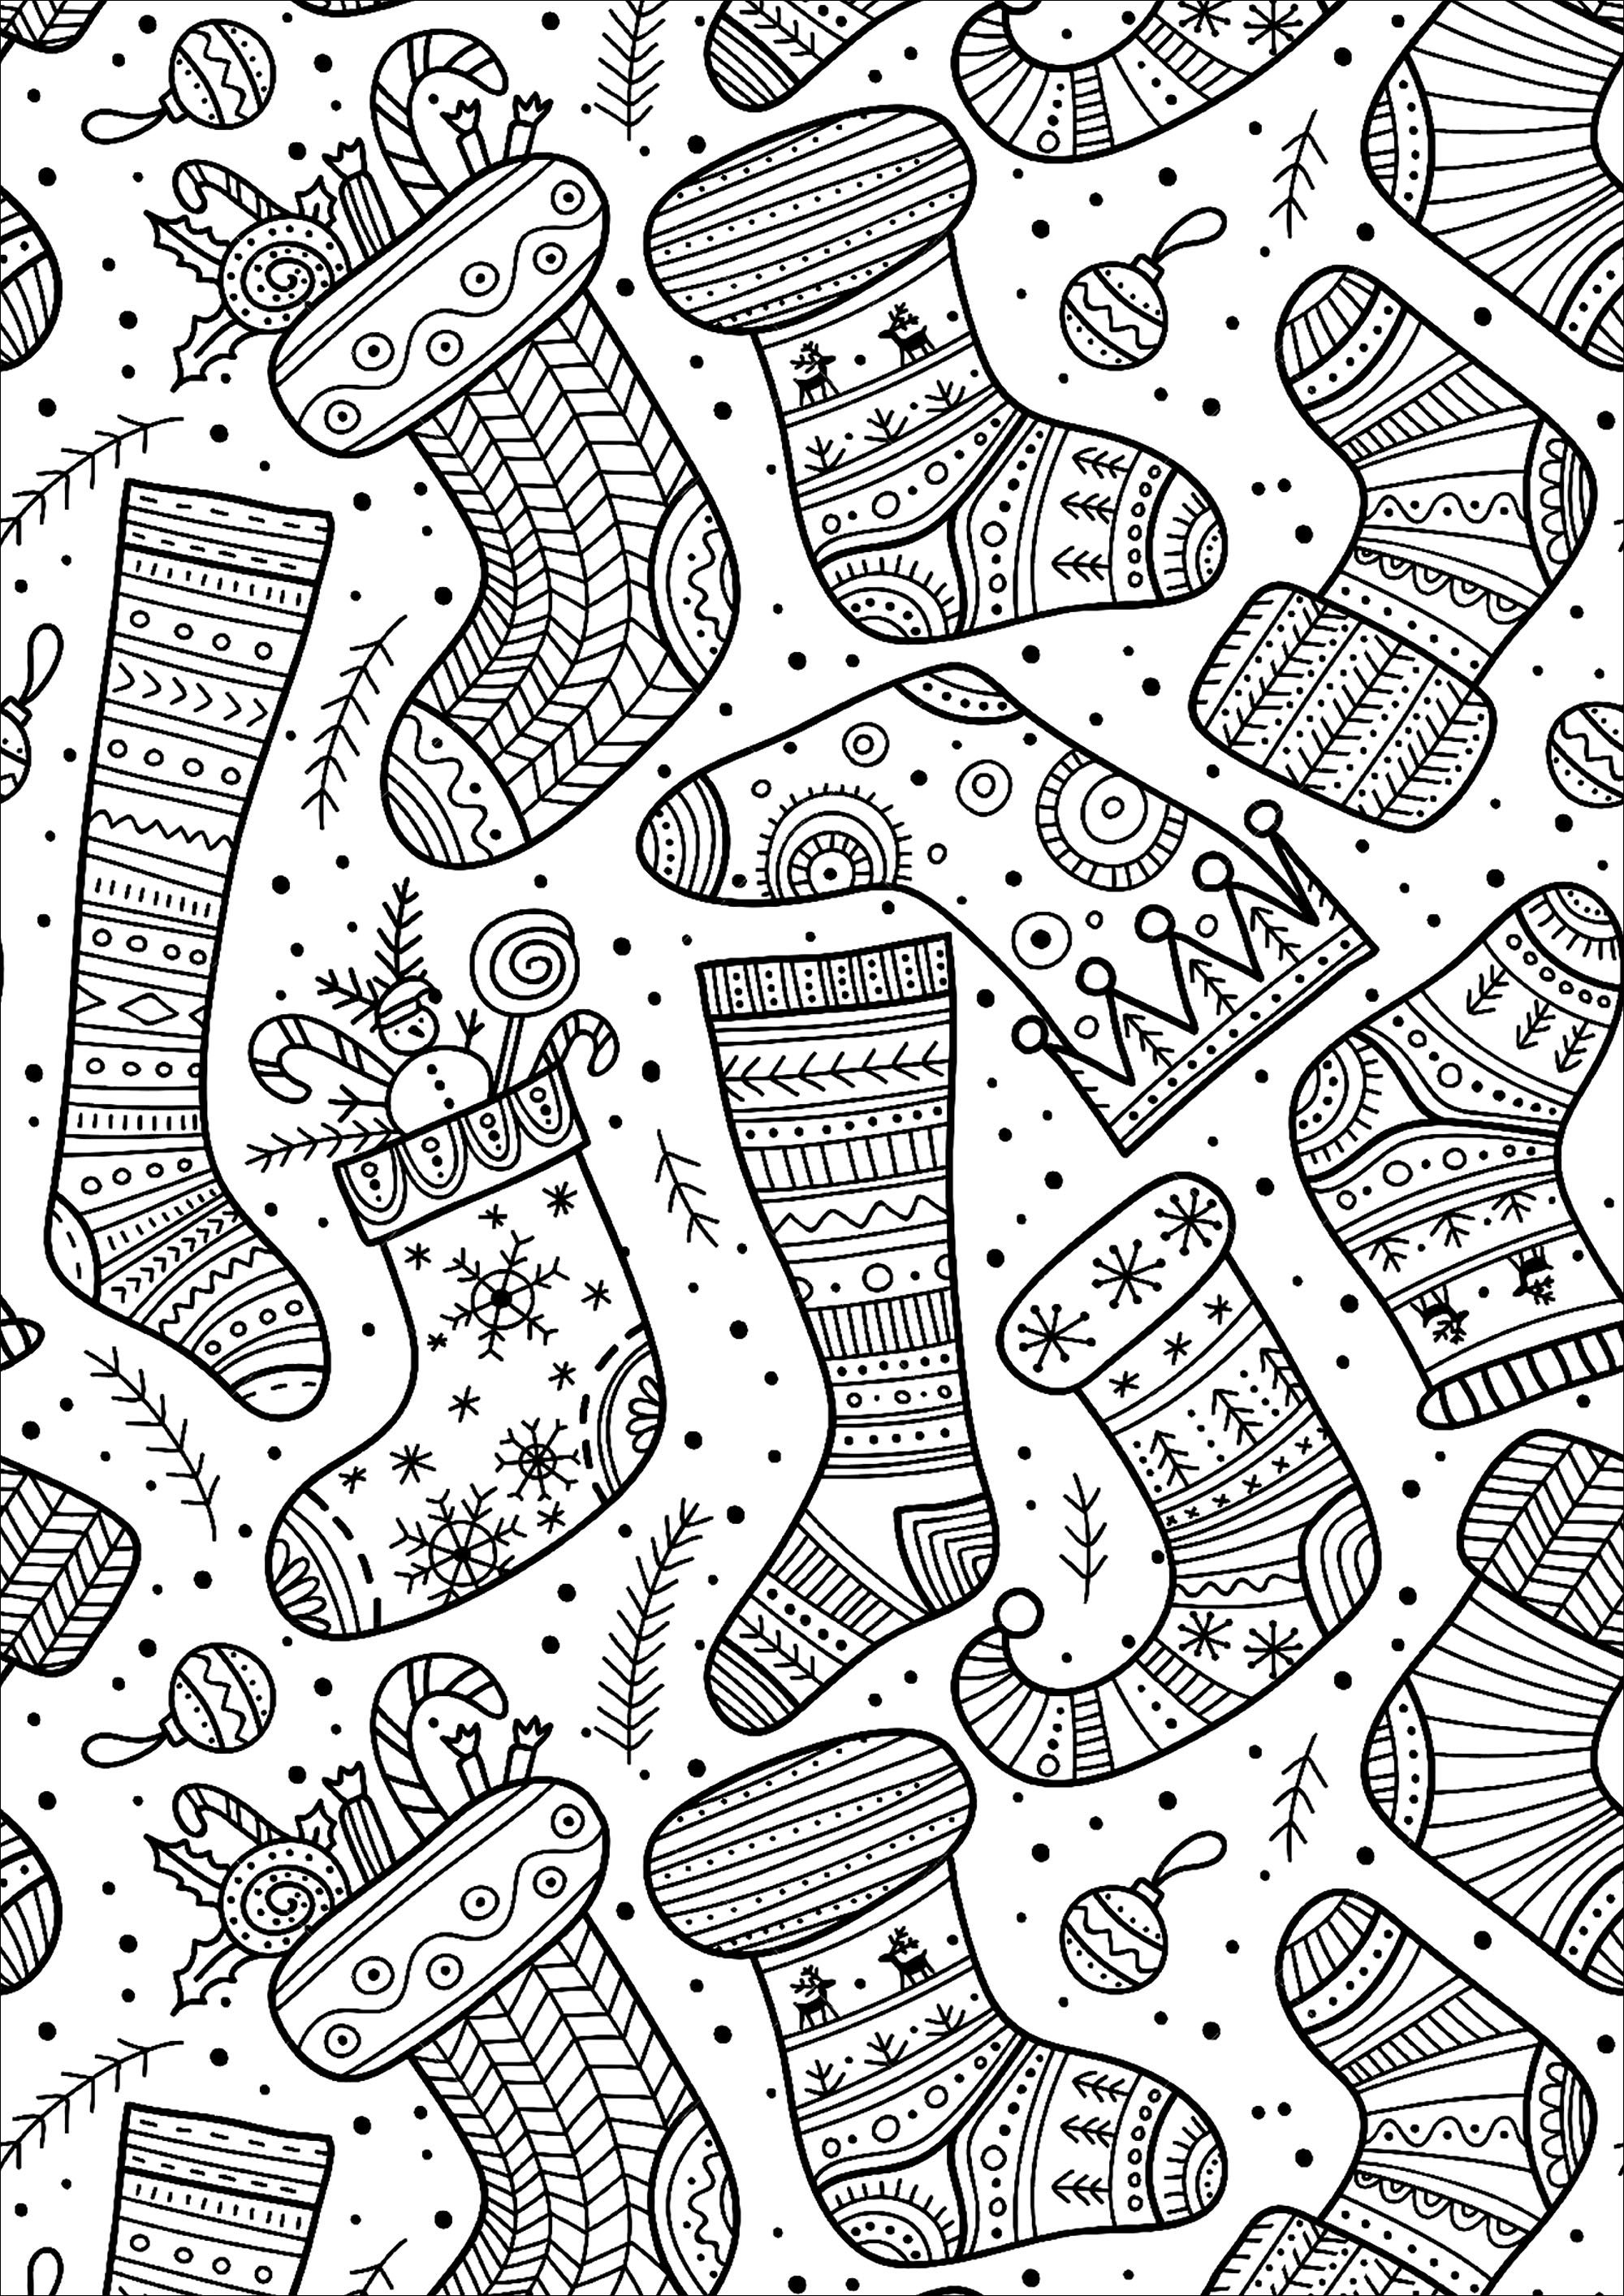 Cute Christmas Socks With Various And Happy Designs Christmas Coloring Pages Christmas Coloring Sheets Printable Christmas Coloring Pages